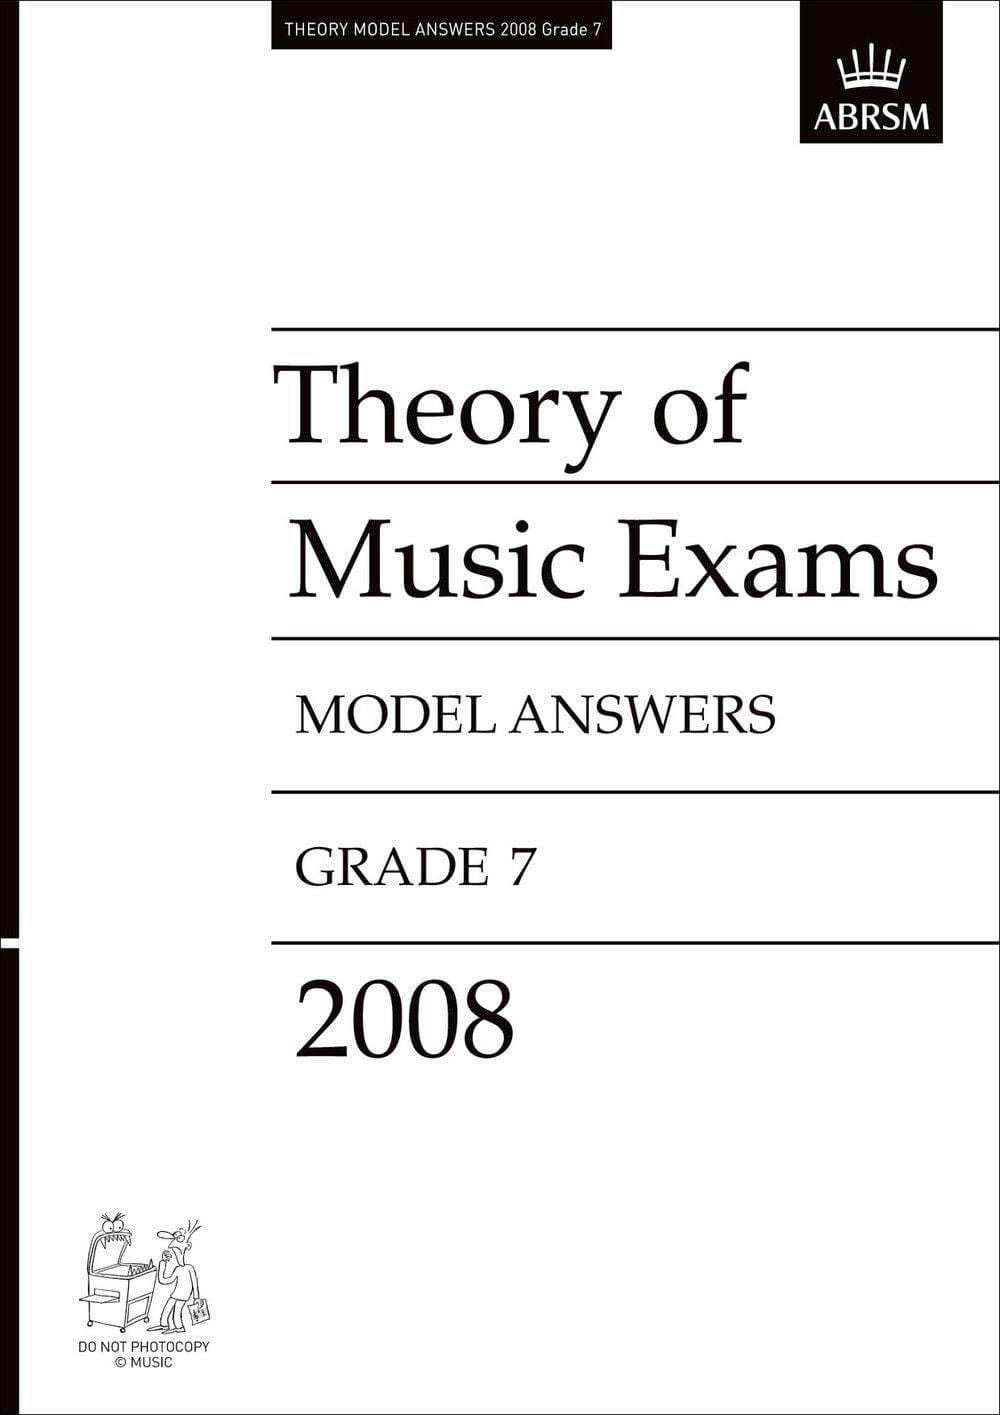 Theory of Music Exams Model Answers, Grade 7-2008 - Biggars Music